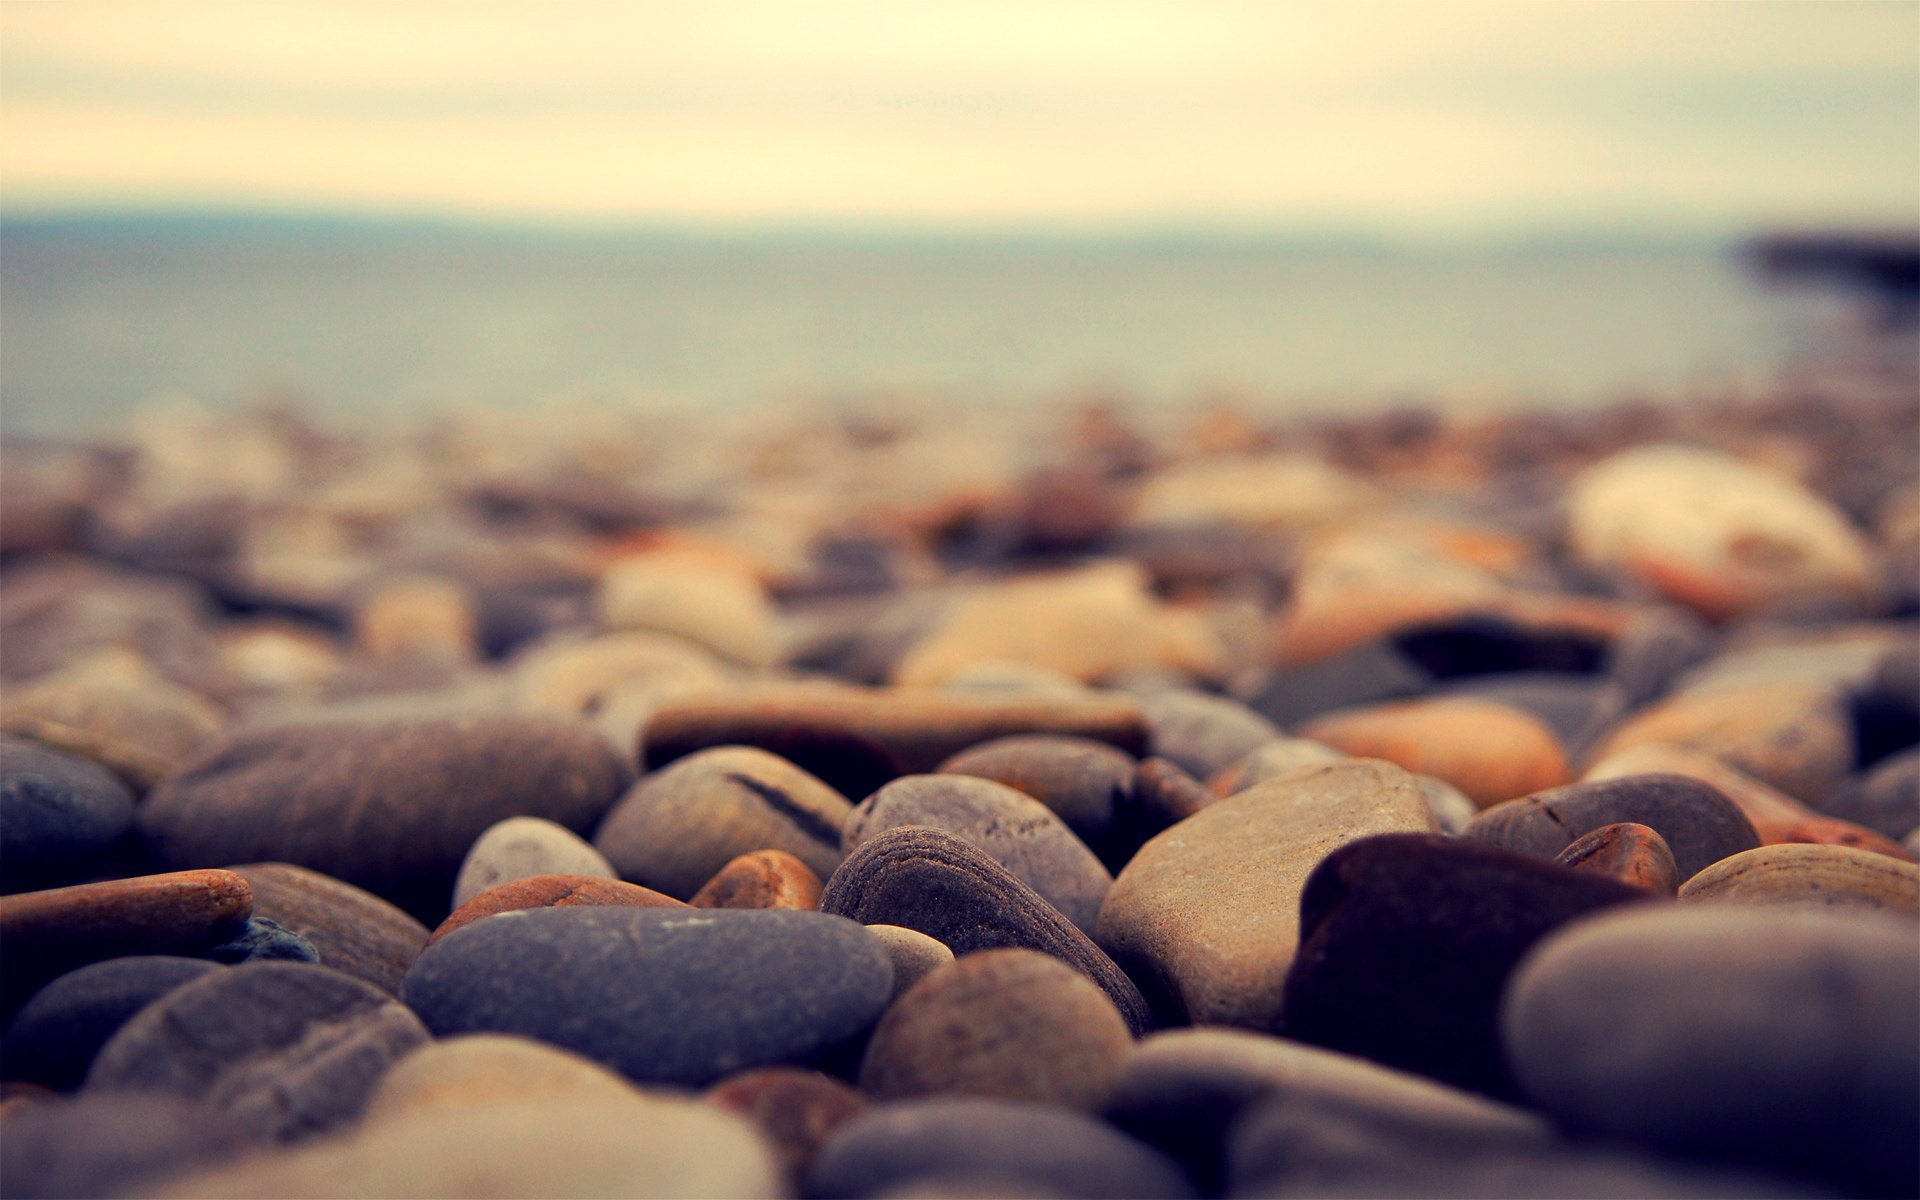 Pebbles Wallpapers Pictures Images HD Wallpapers Download Free Images Wallpaper [1000image.com]